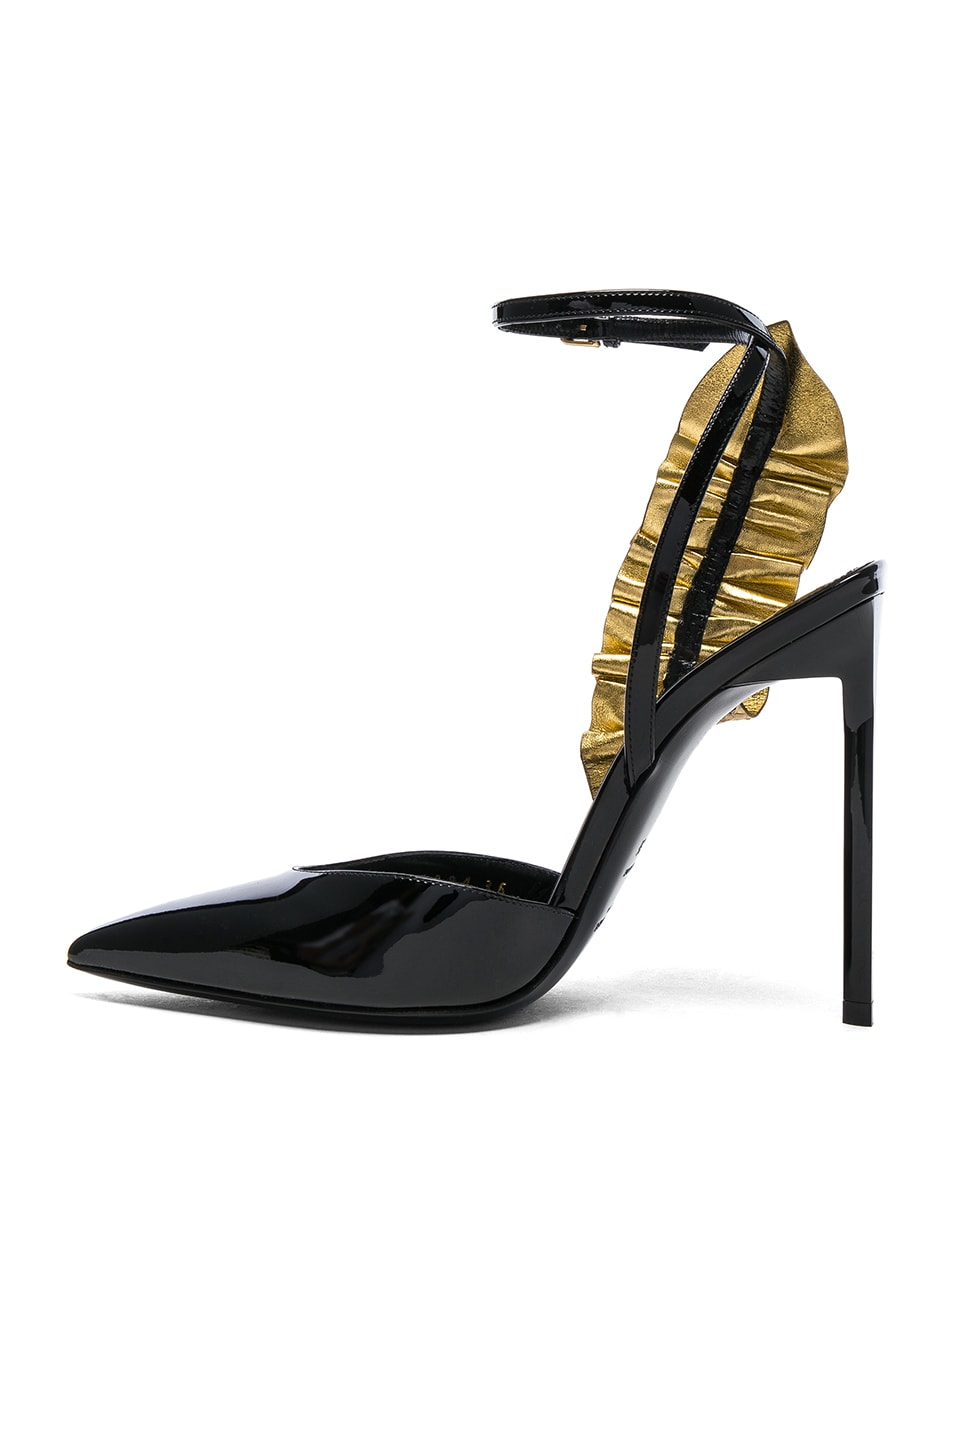 Image 5 of Saint Laurent Patent Leather  Edie Ruffle Heels in Gold & Black